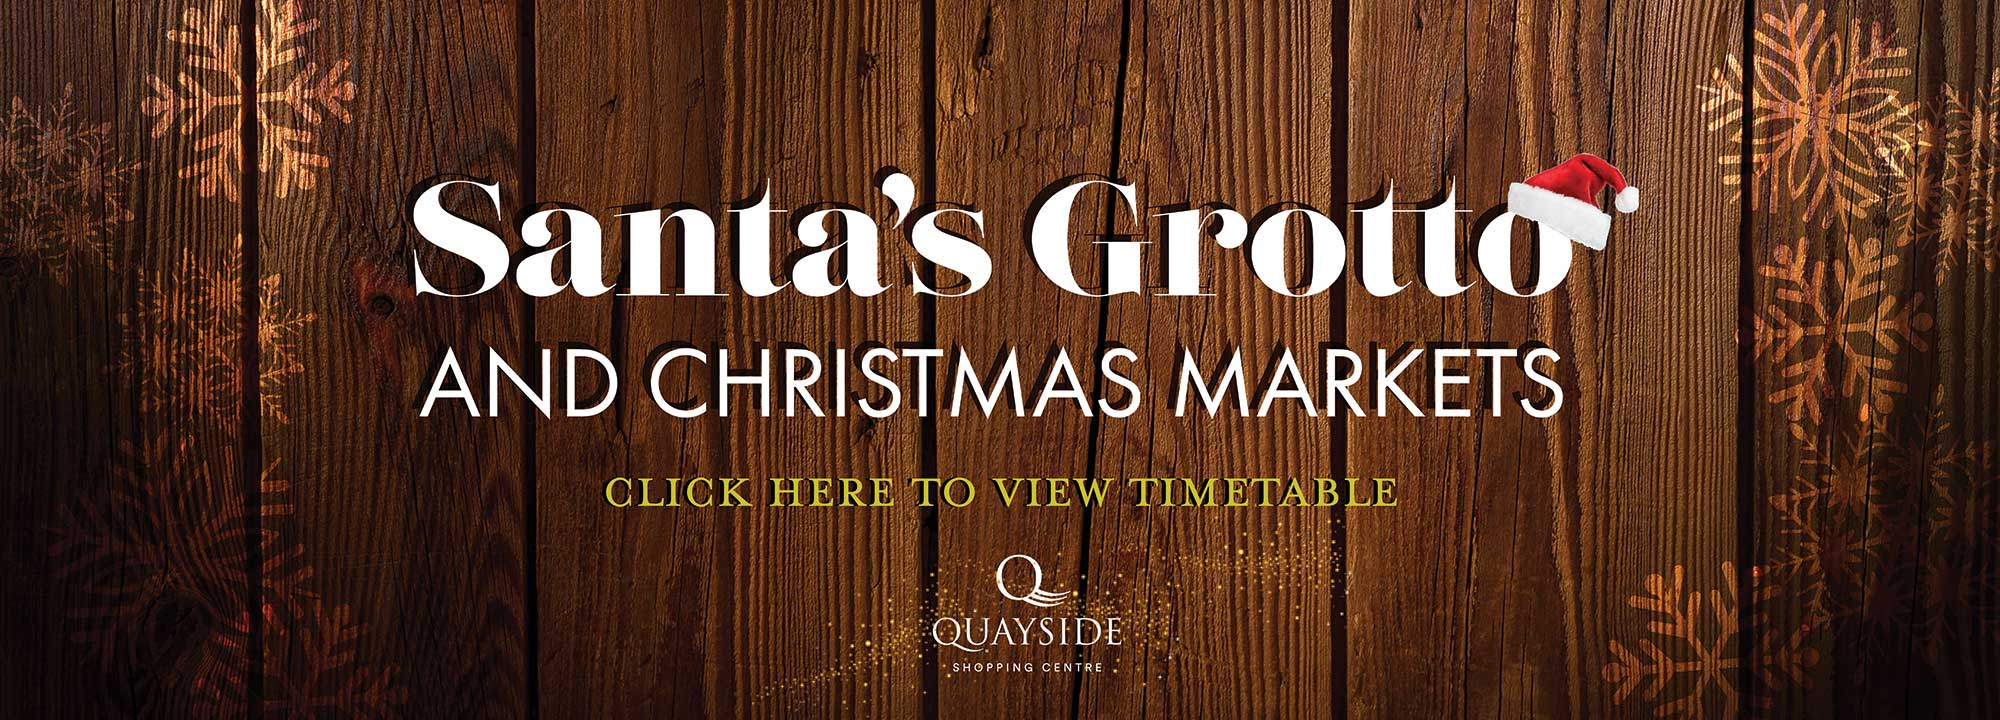 Click here for Santas Grotto and Christmas markets timetable